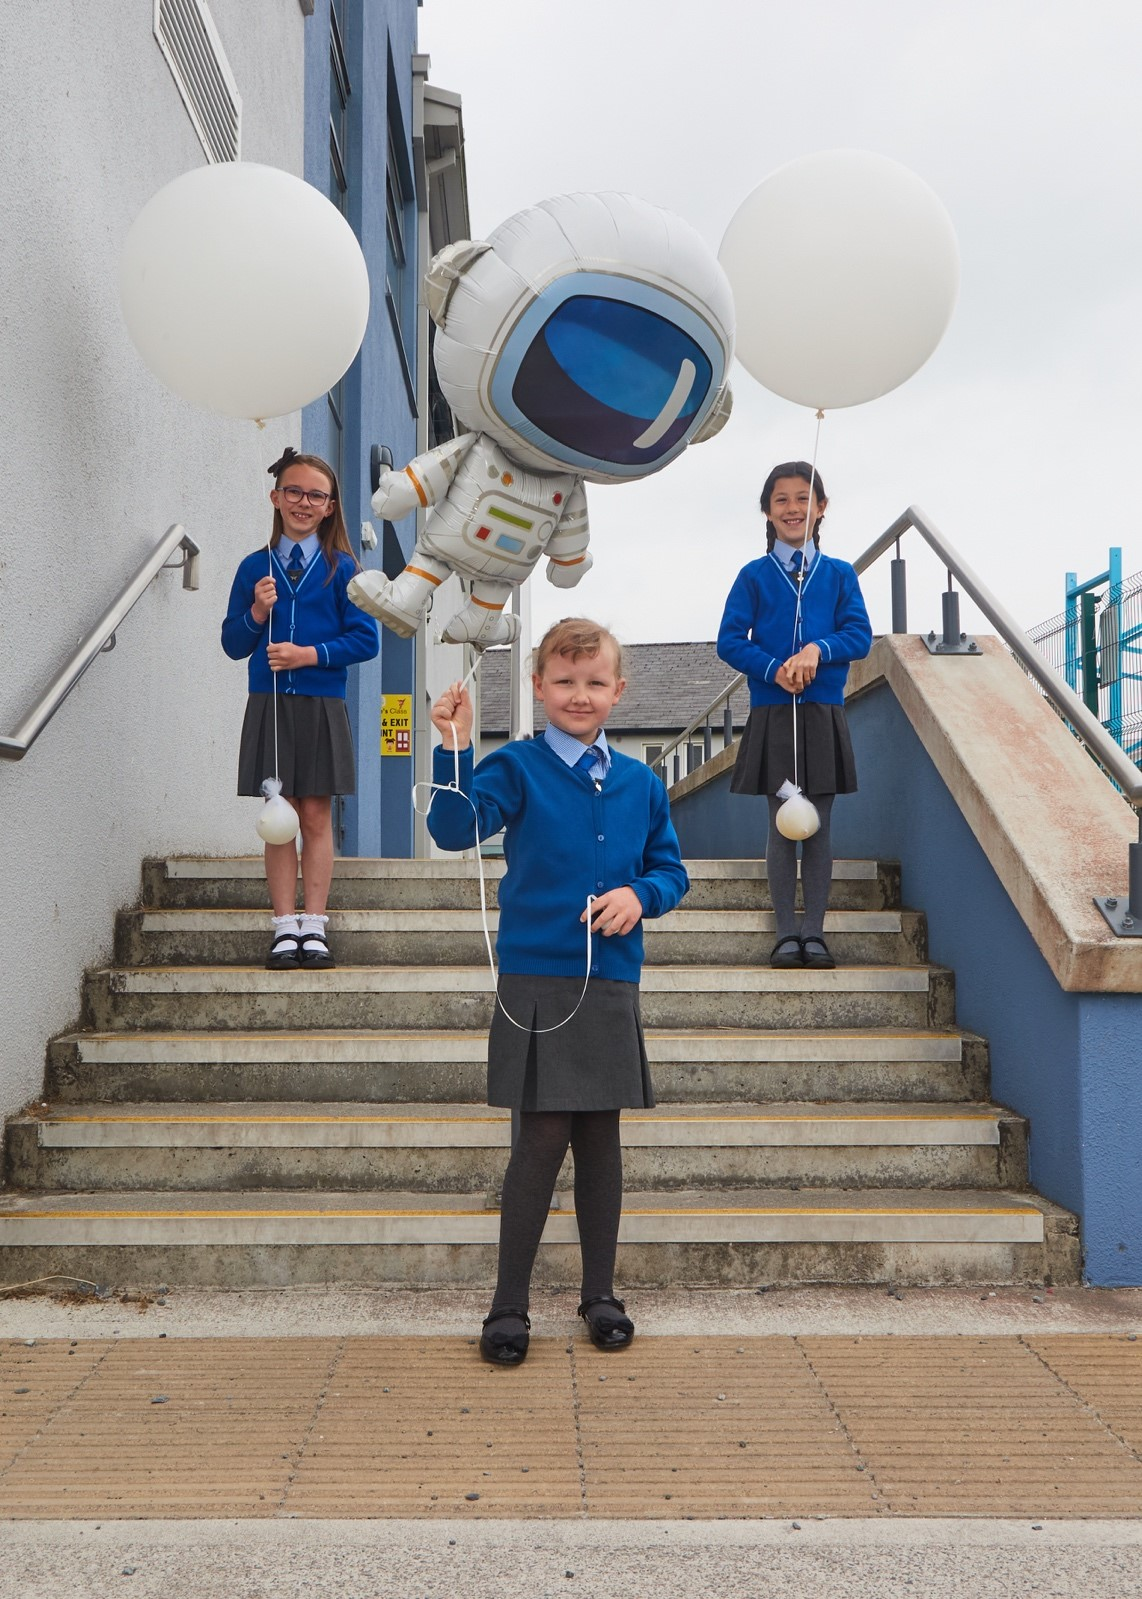 Pupils at Scoil Mhuire Oranmare, Galway, who are taking part in the NUI Galway led 'SpaceShip Earth' mission